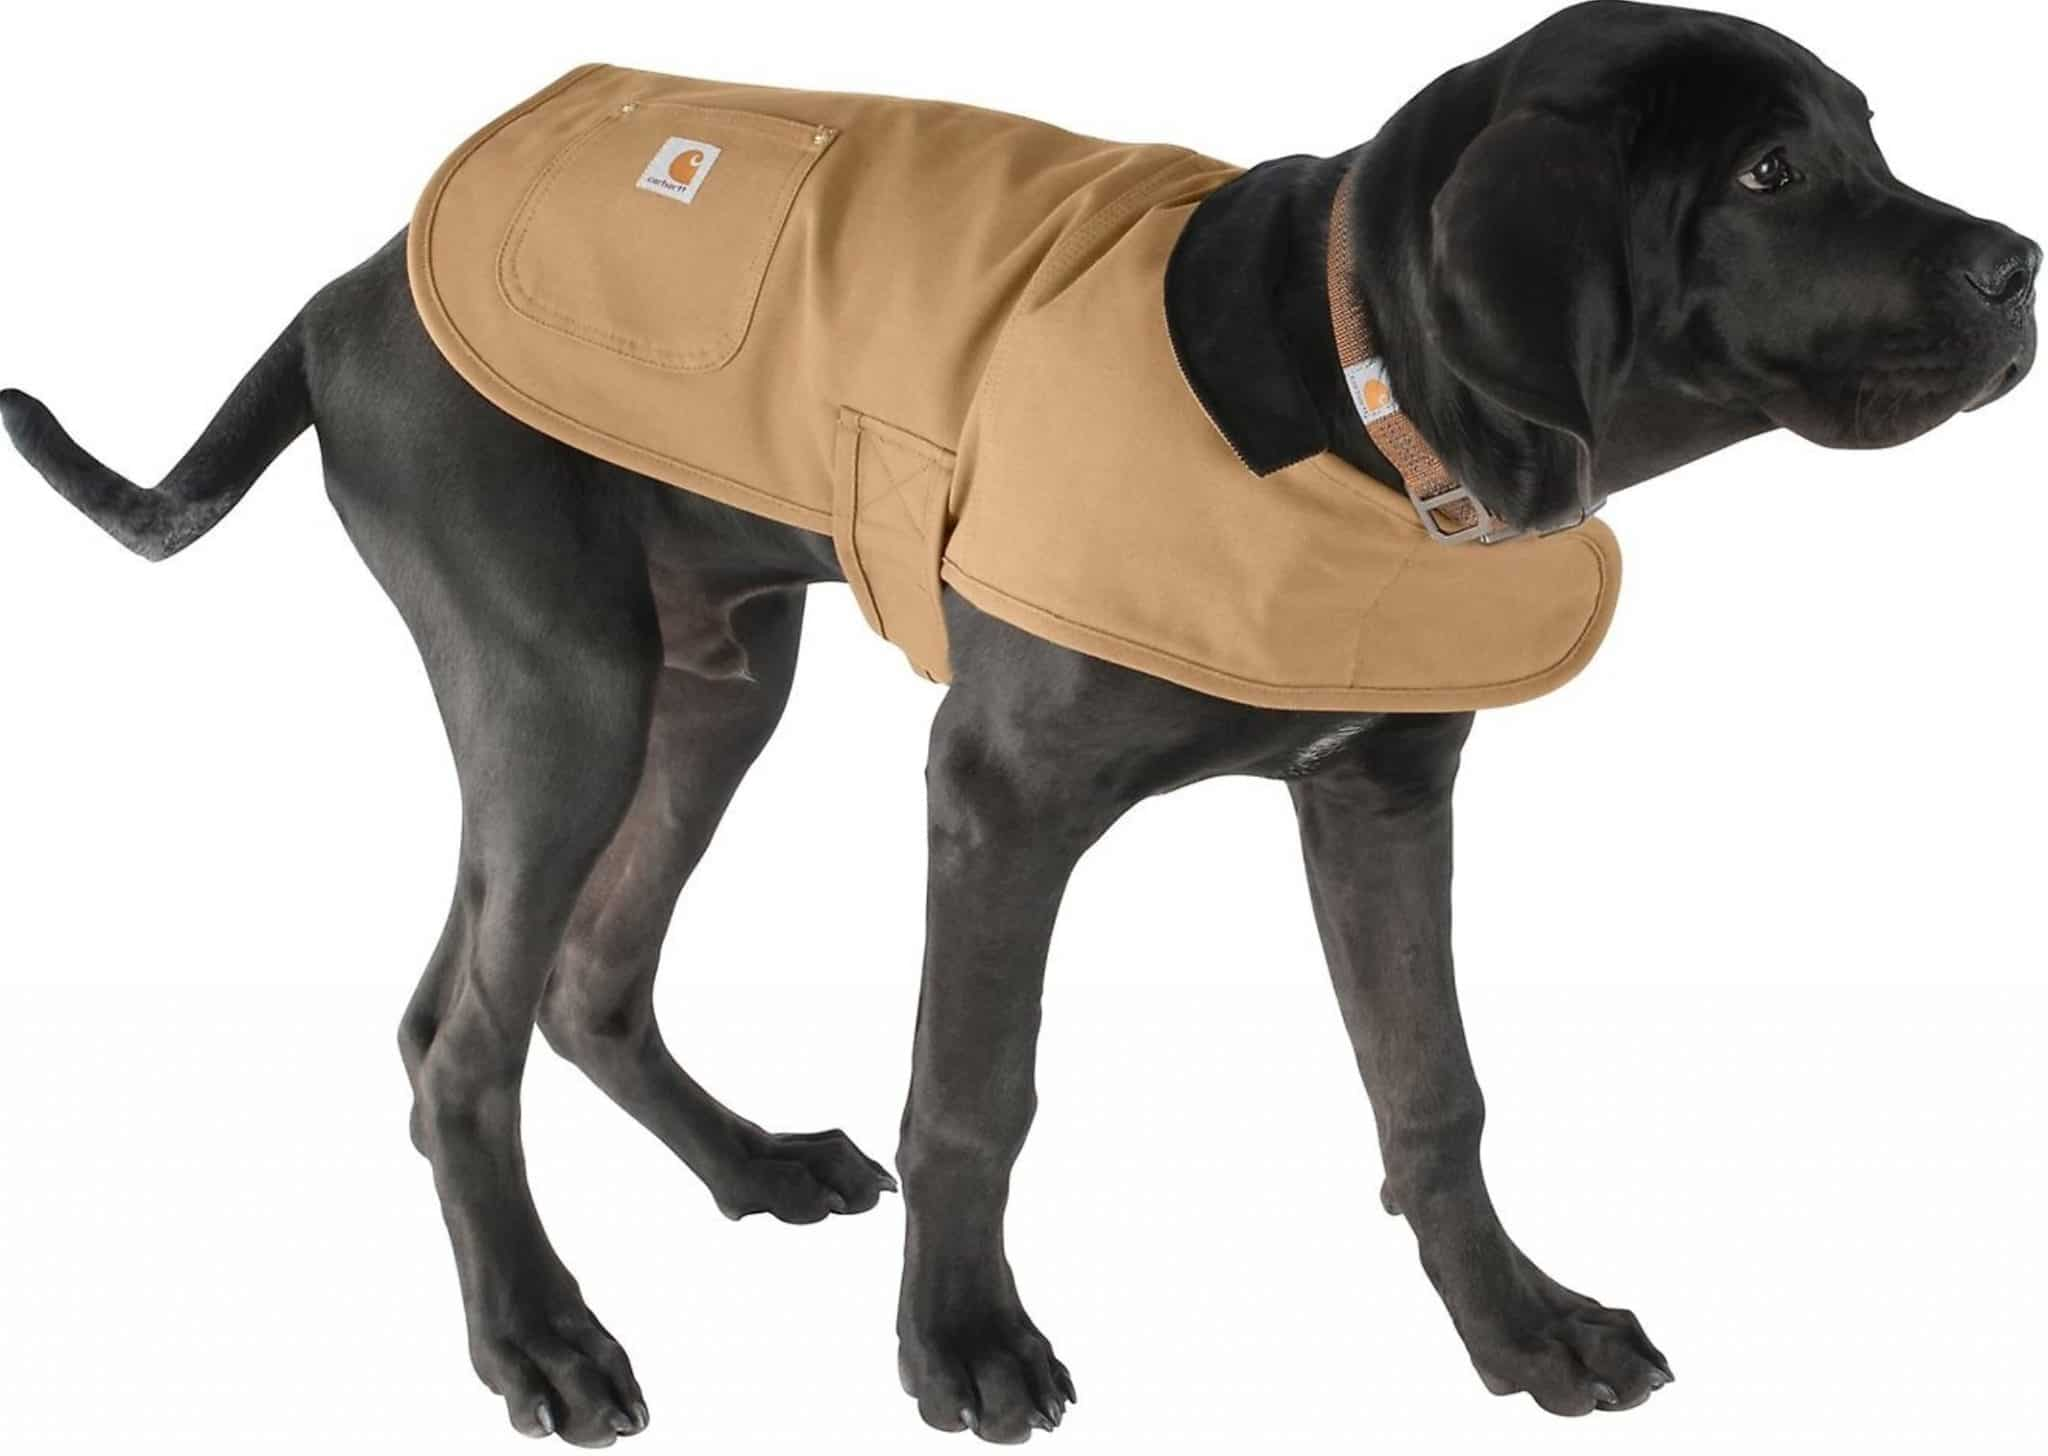 Our Review Of The Carhartt Dog C Coat